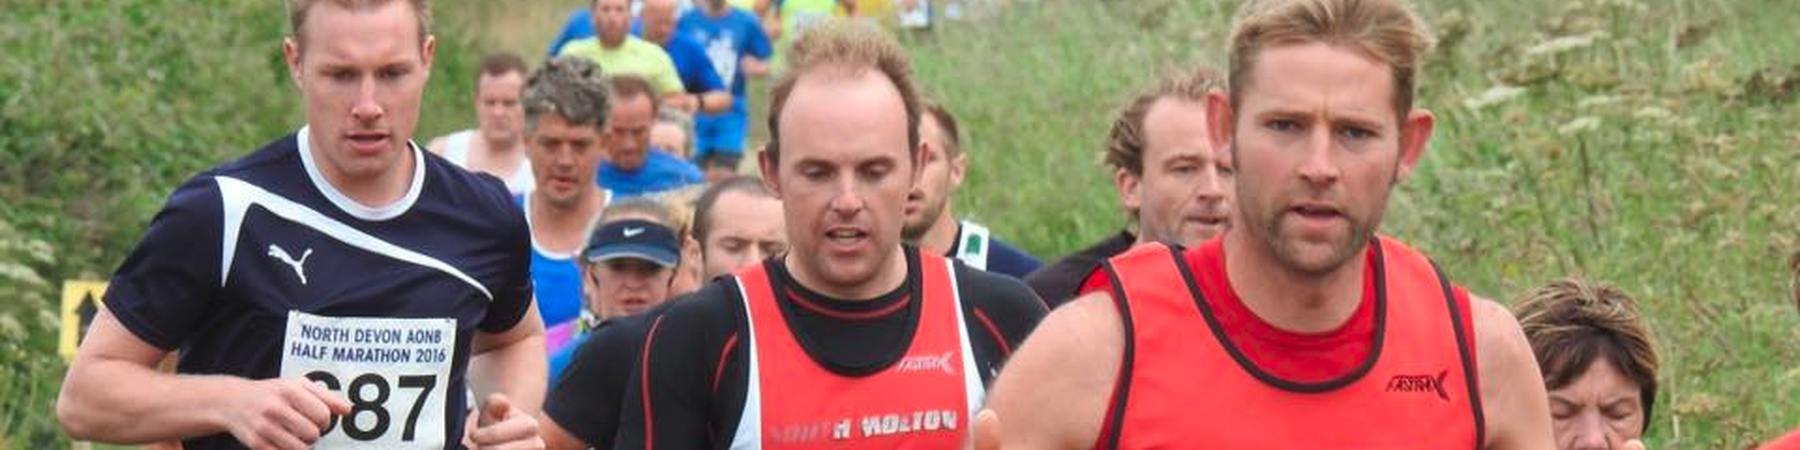 North Devon Half Marathon